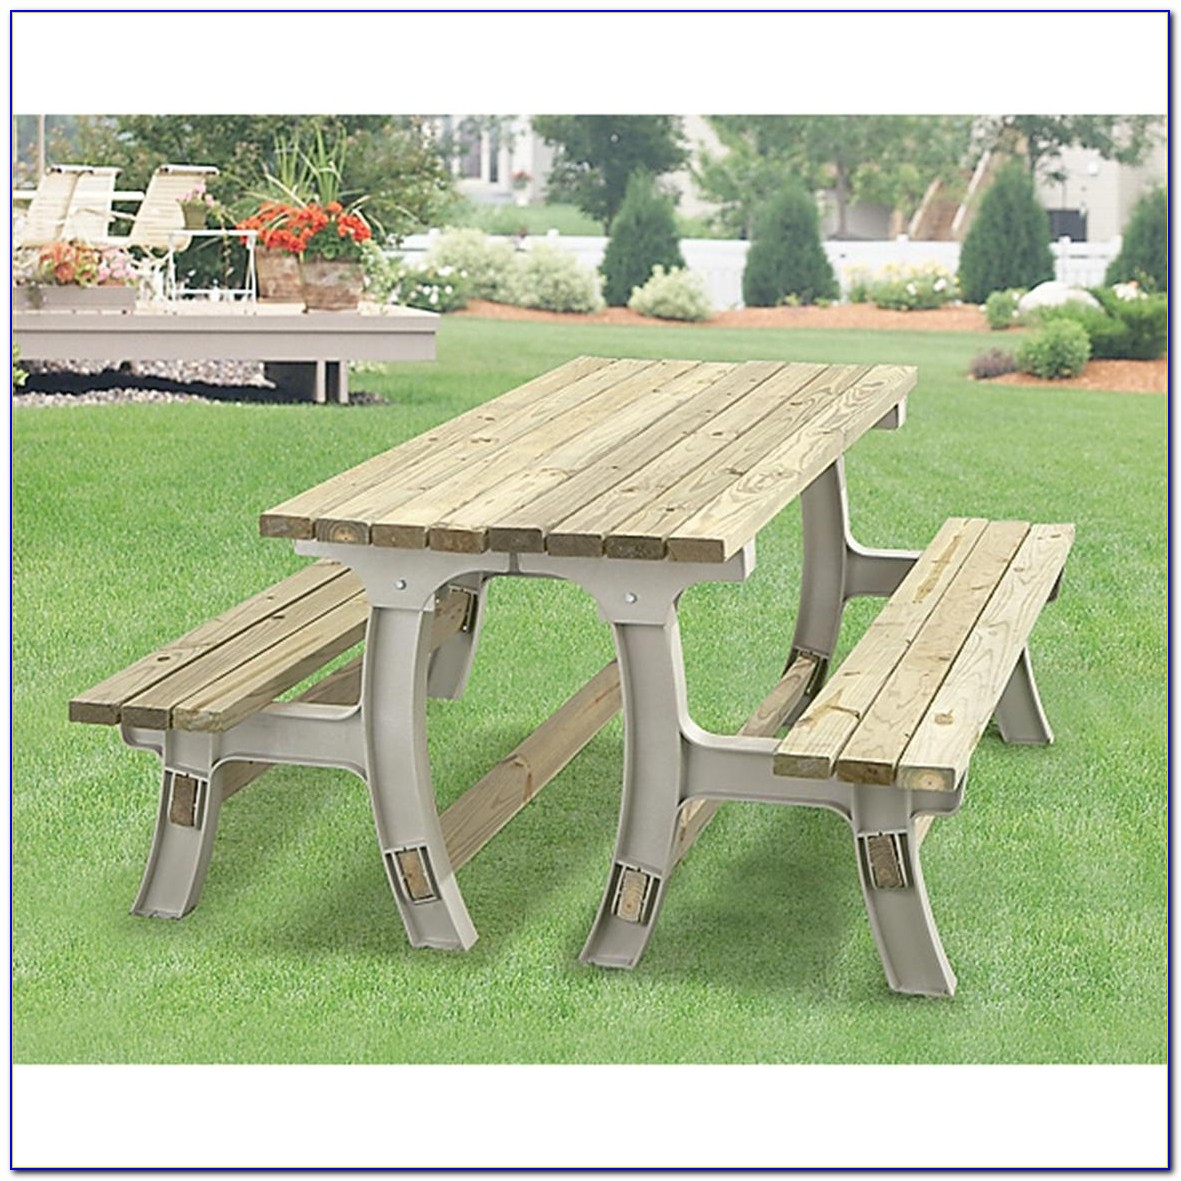 Park Bench That Converts To Picnic Table